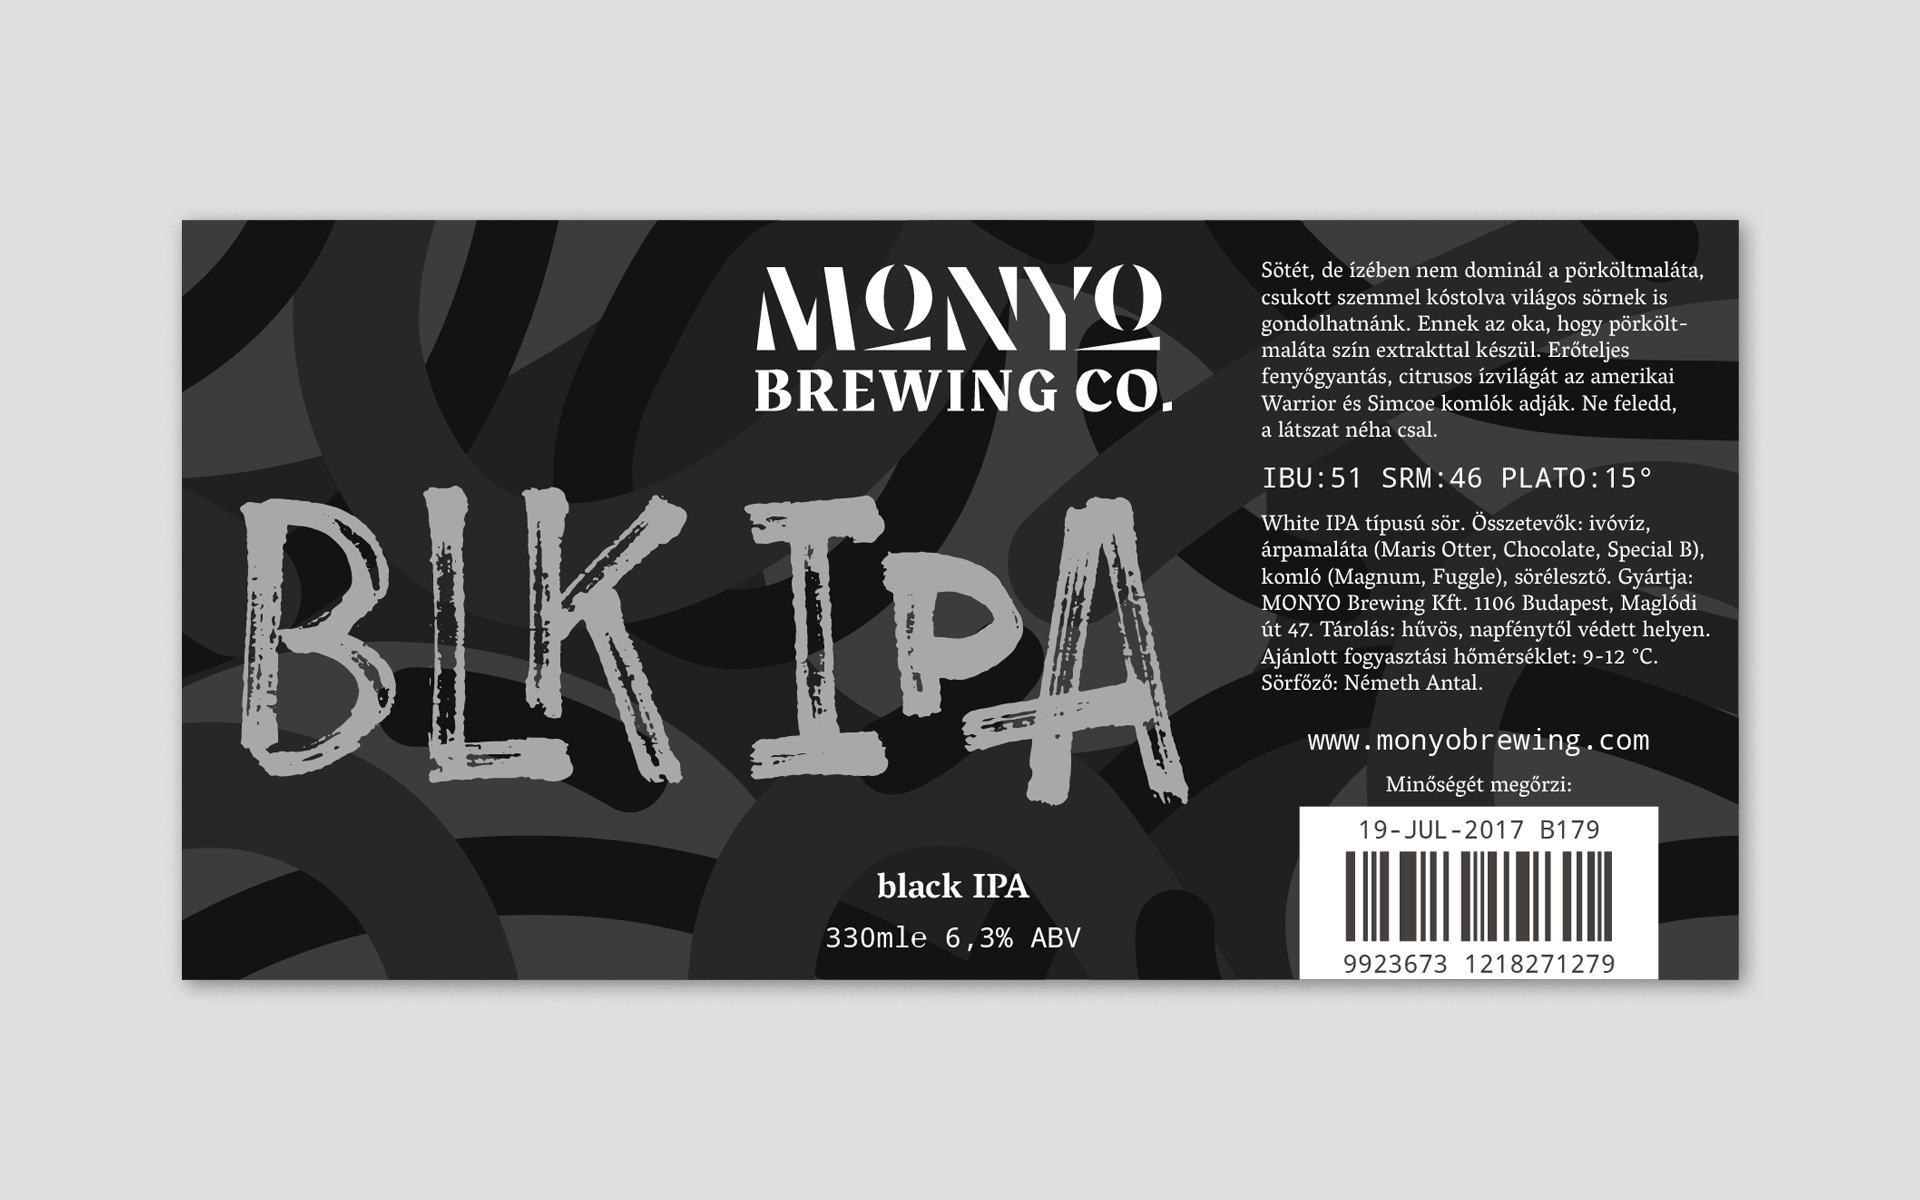 MONYO craft beer packaging \ Black IPA label design